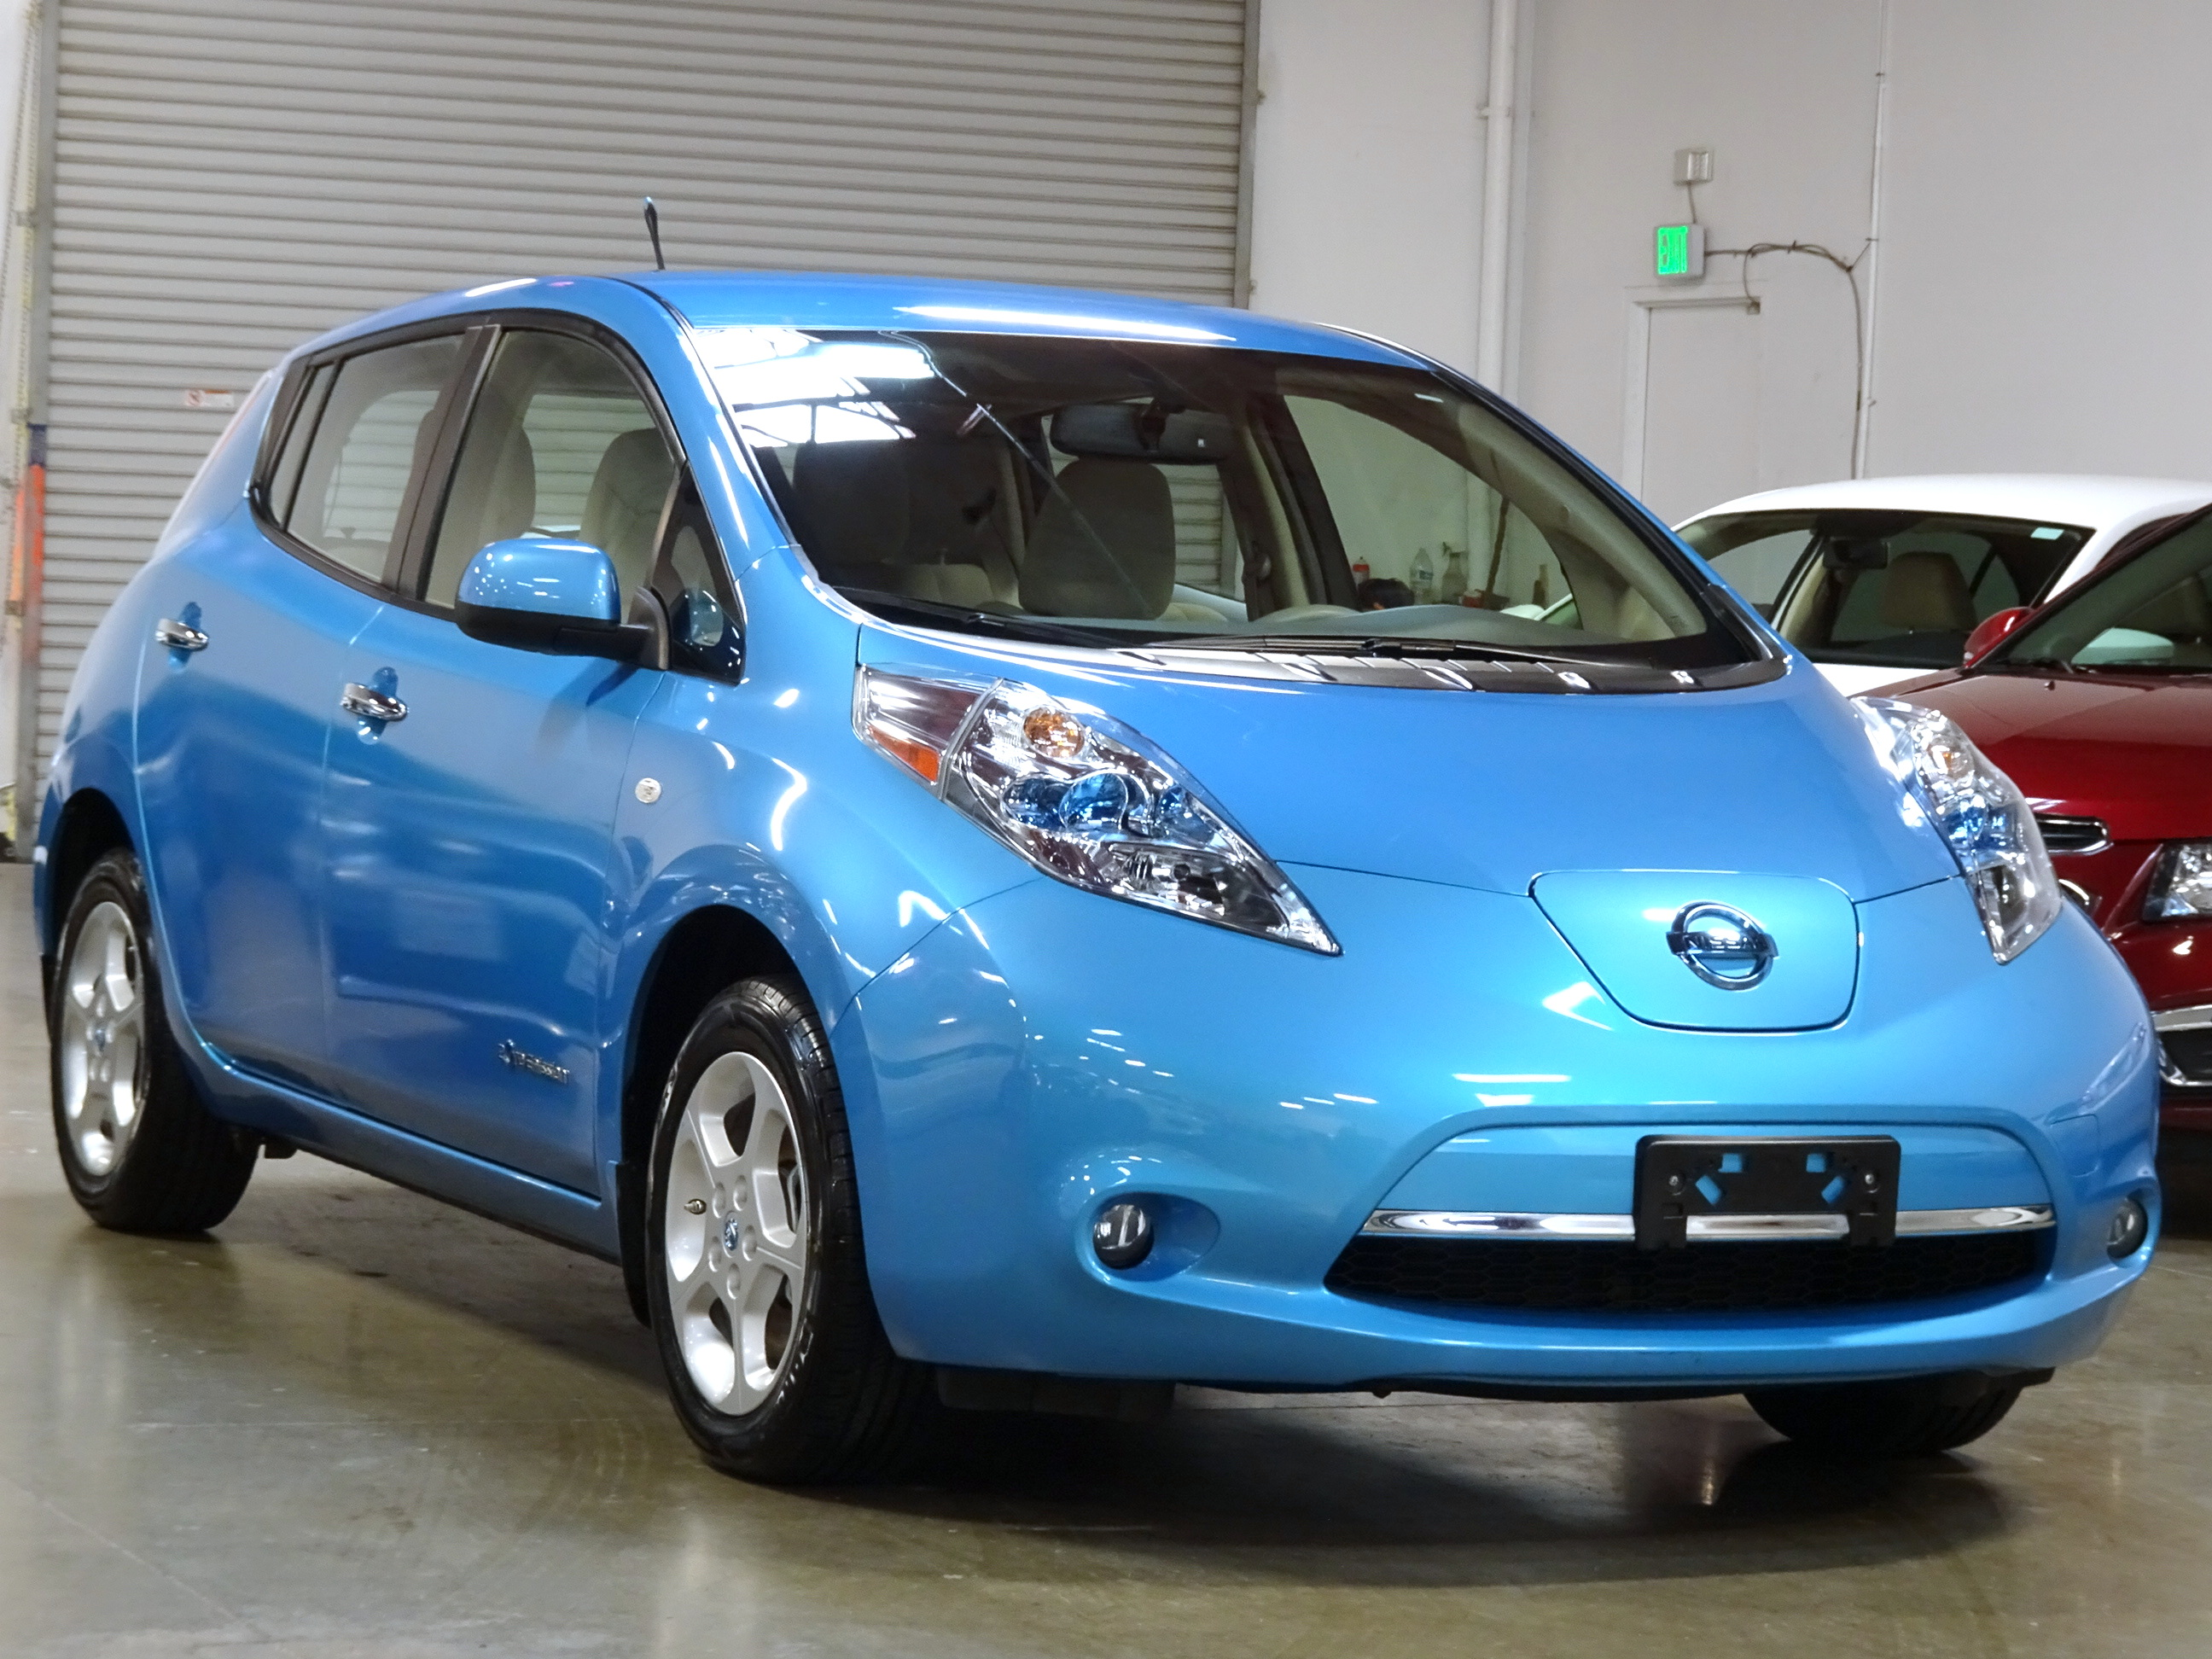 2012 nissan leaf sl navigation new tires warranty quick 2012 nissan leaf sl navigation new tires warranty quick charge port in vanachro Choice Image